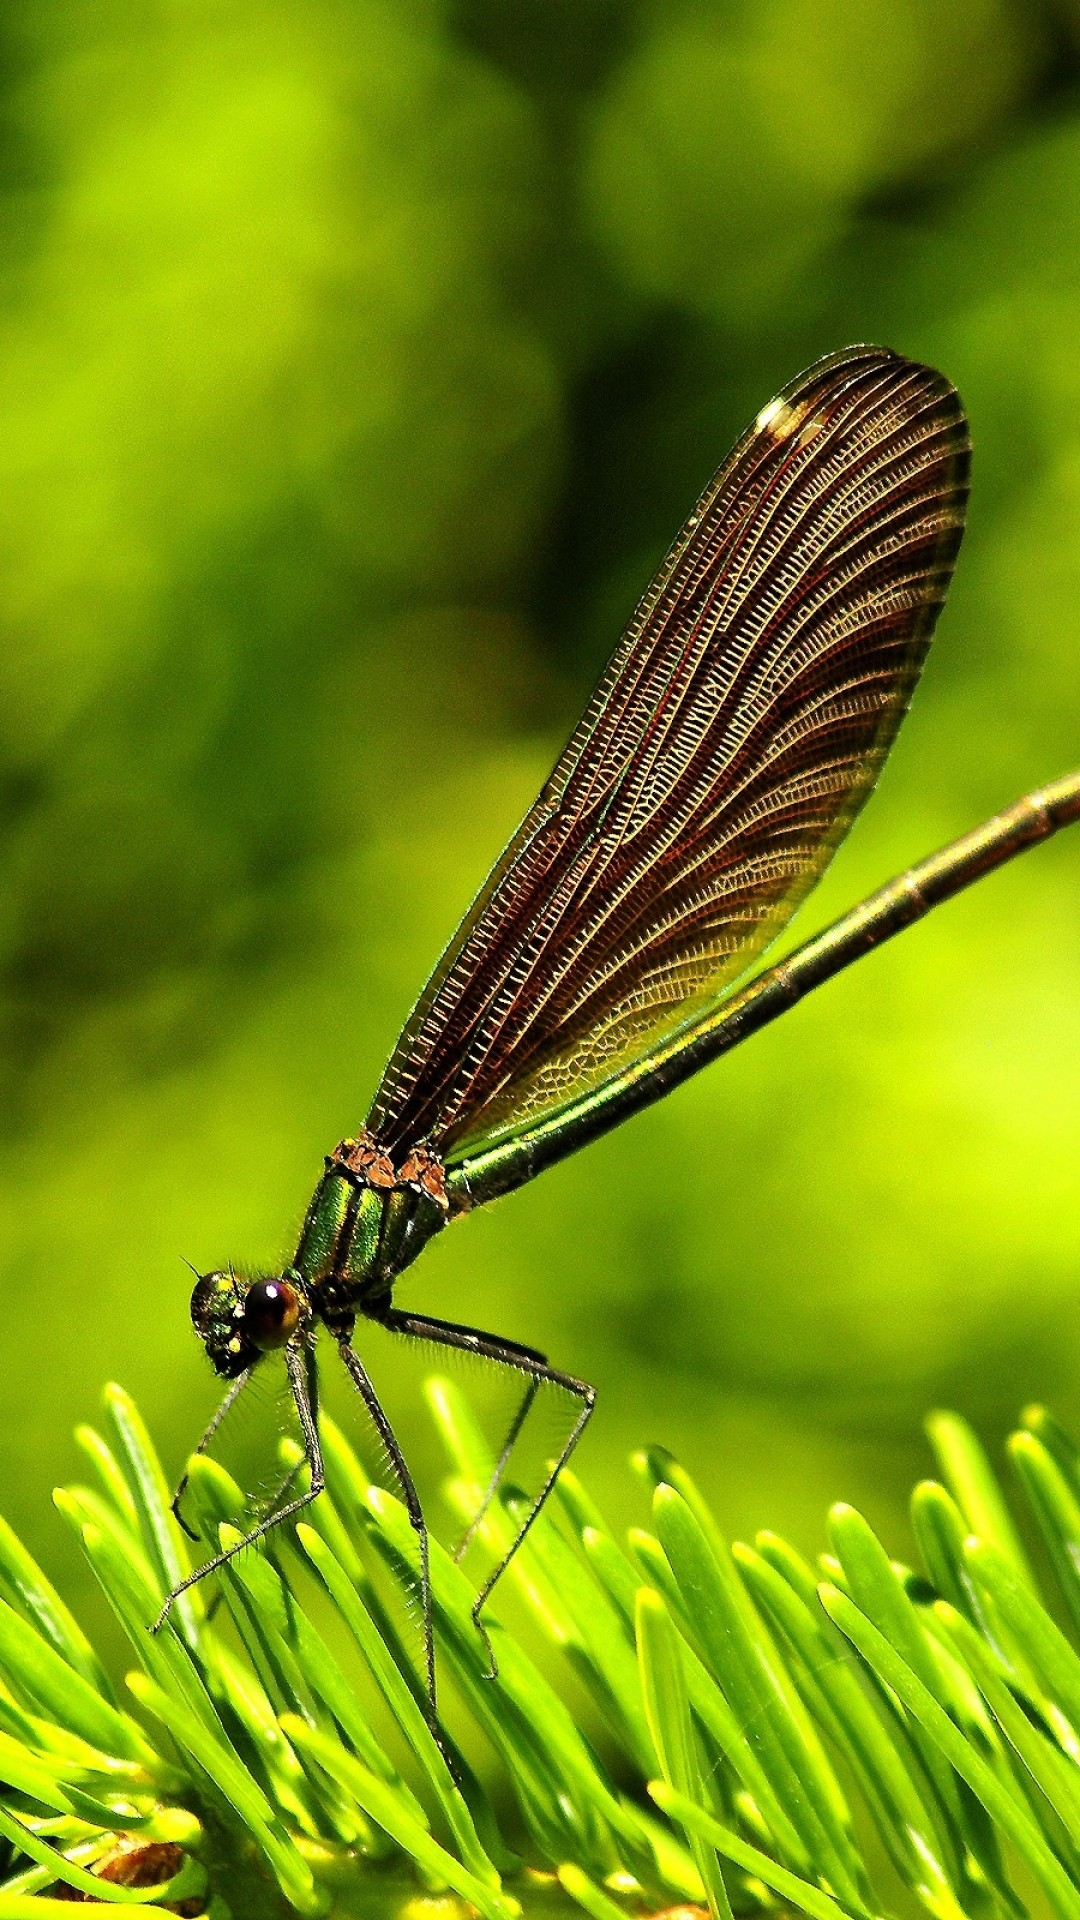 dragonfly wallpaper for phone